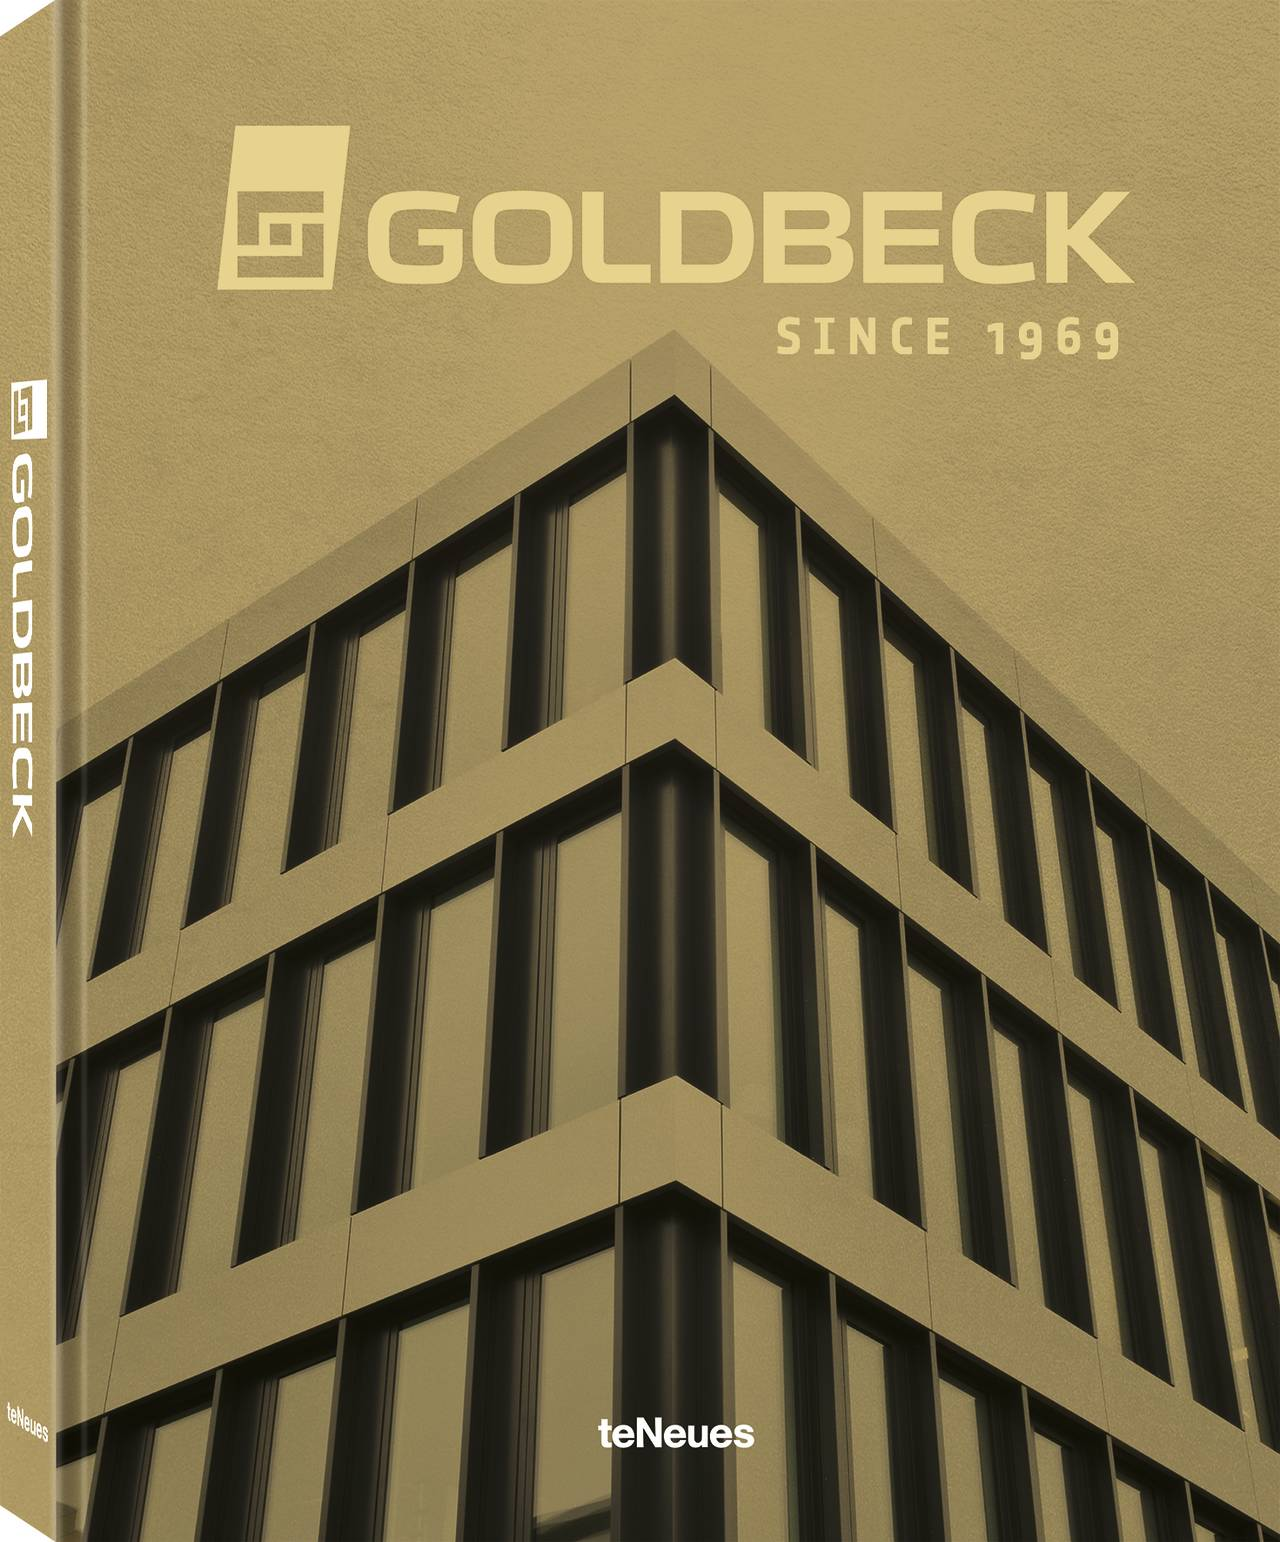 © GOLDBECK - Since 1969, published by teNeues, www.teneues.com, Photo © GOLDBECK GmbH